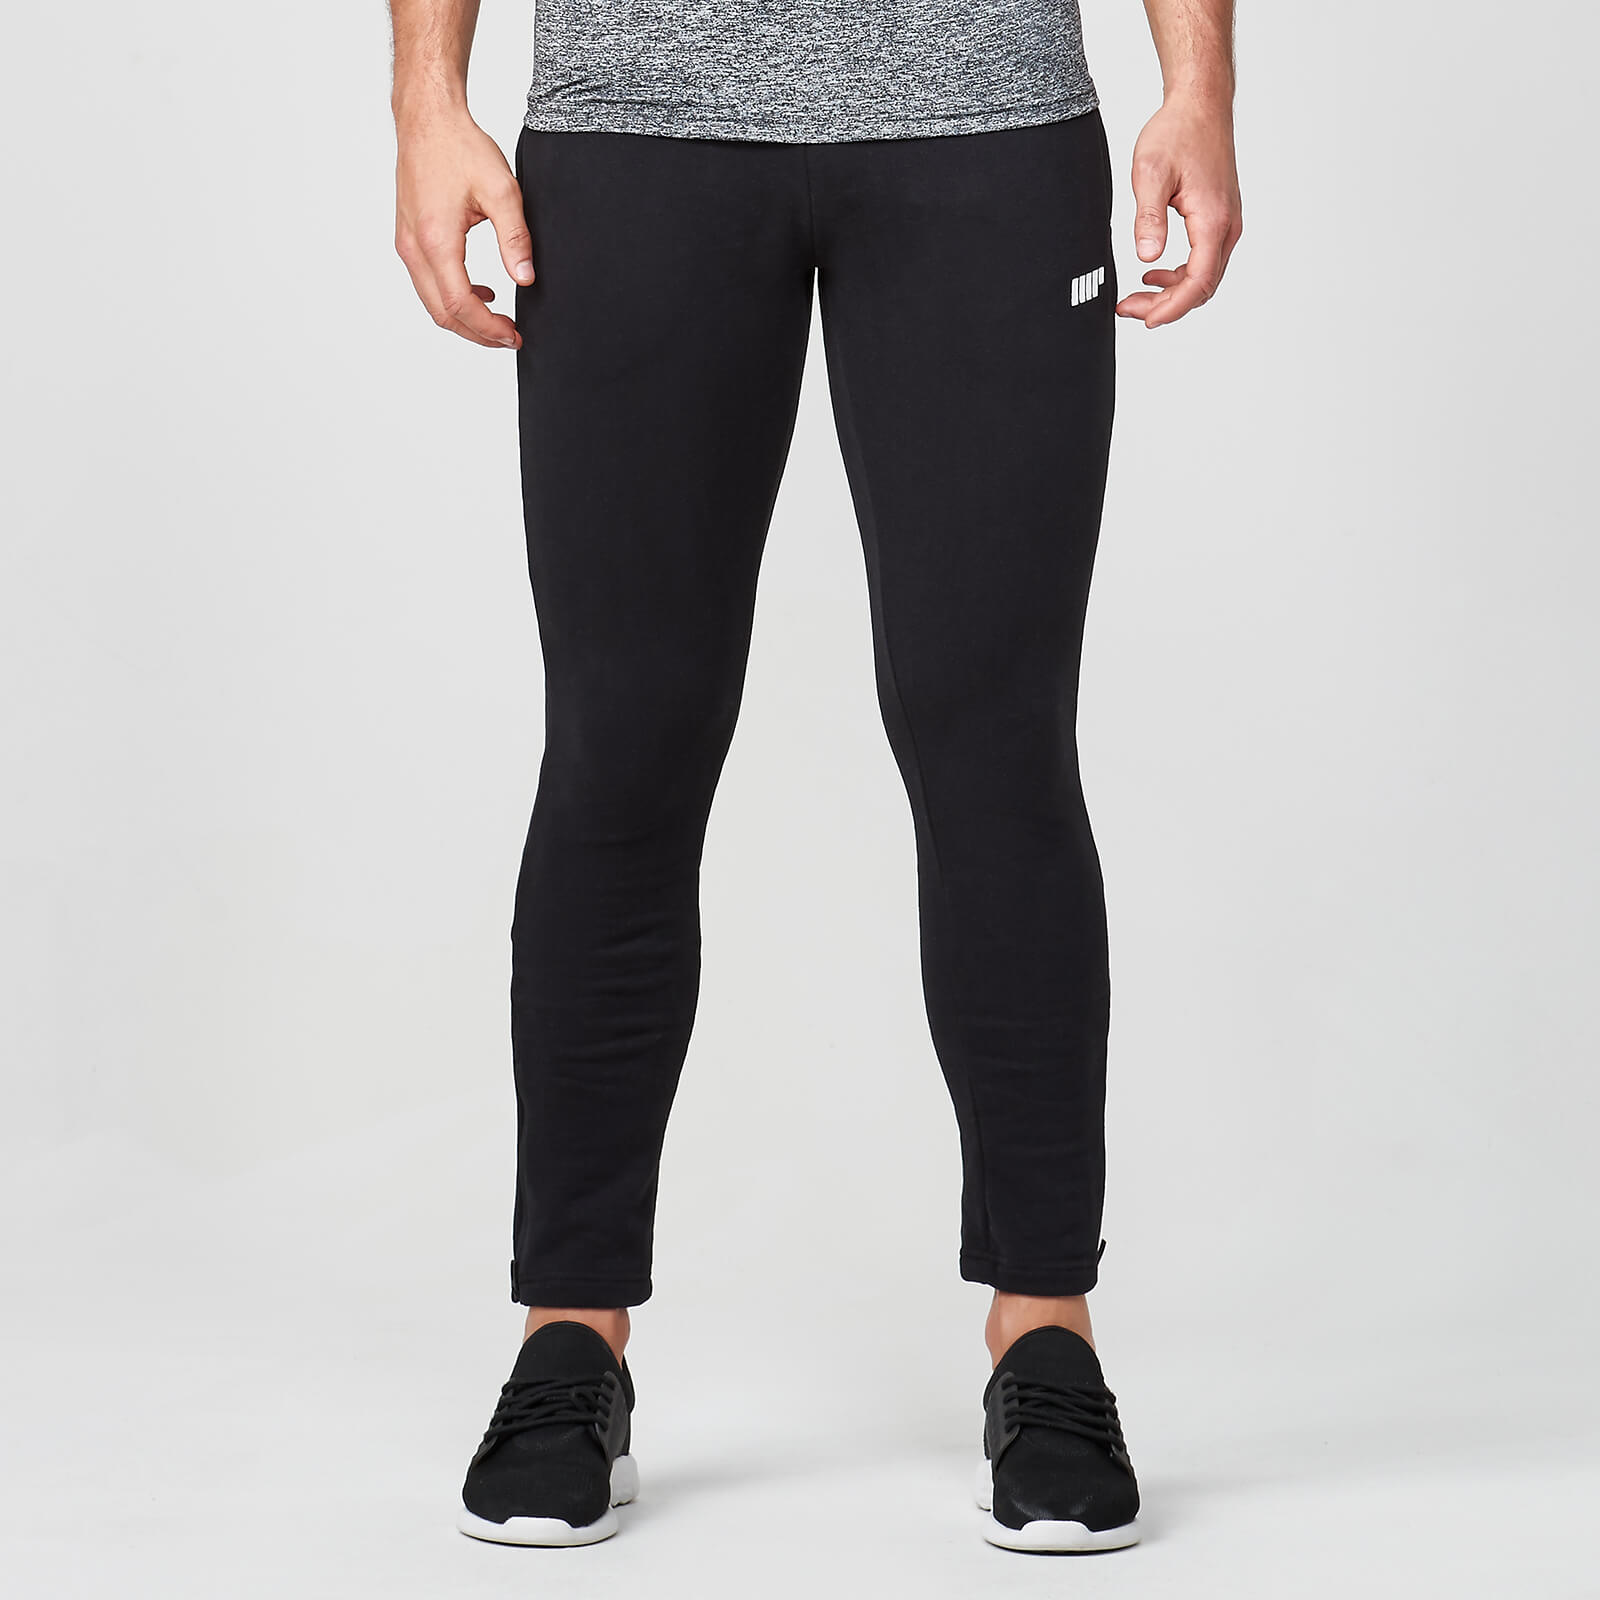 Myprotein Tru-Fit Sweatpants - Black - XS